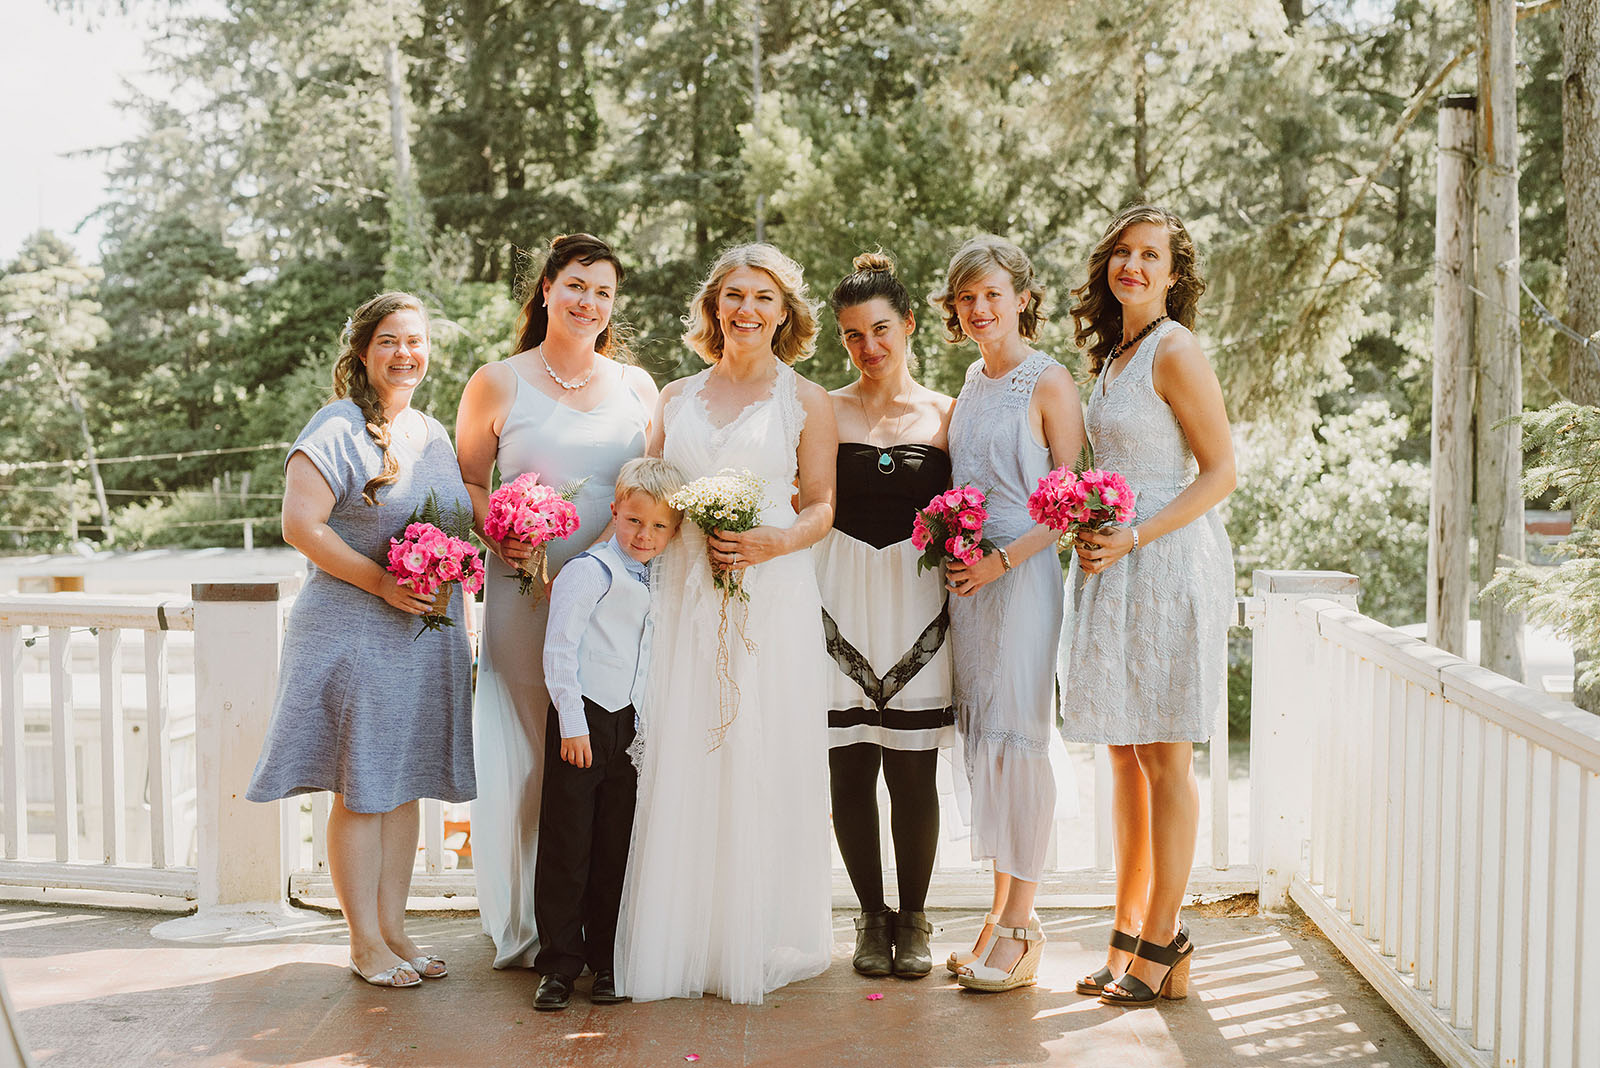 Bride with her bridesmaids on the balcony at a SouWester Wedding in Seaview, WA